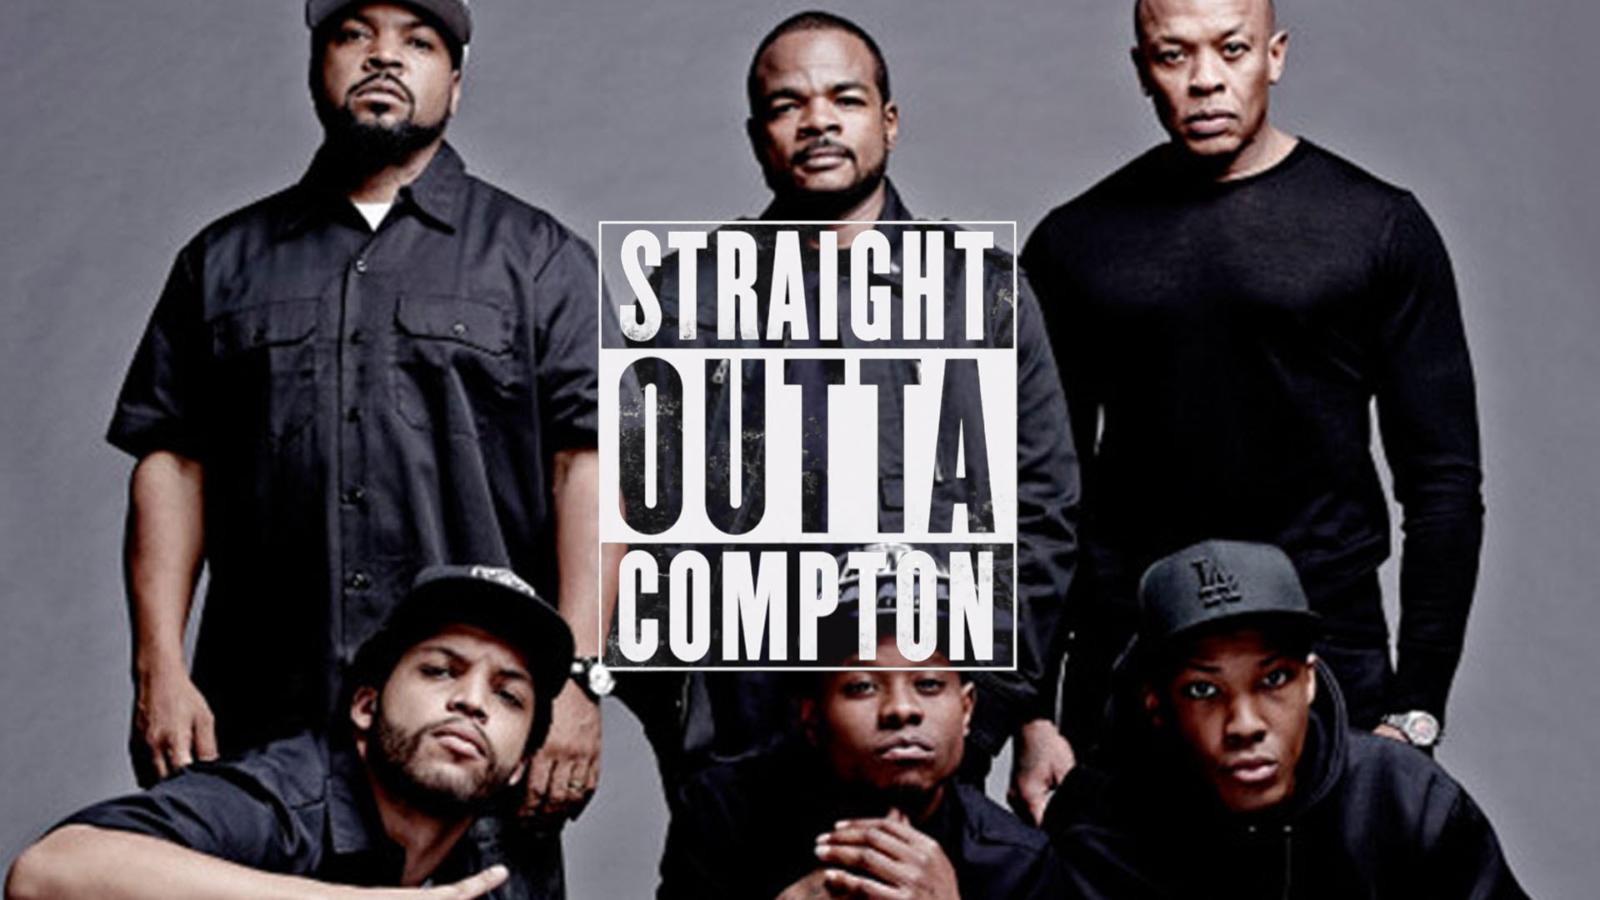 Straight Outta Compton: hit biopic raps up NWA story cleanly